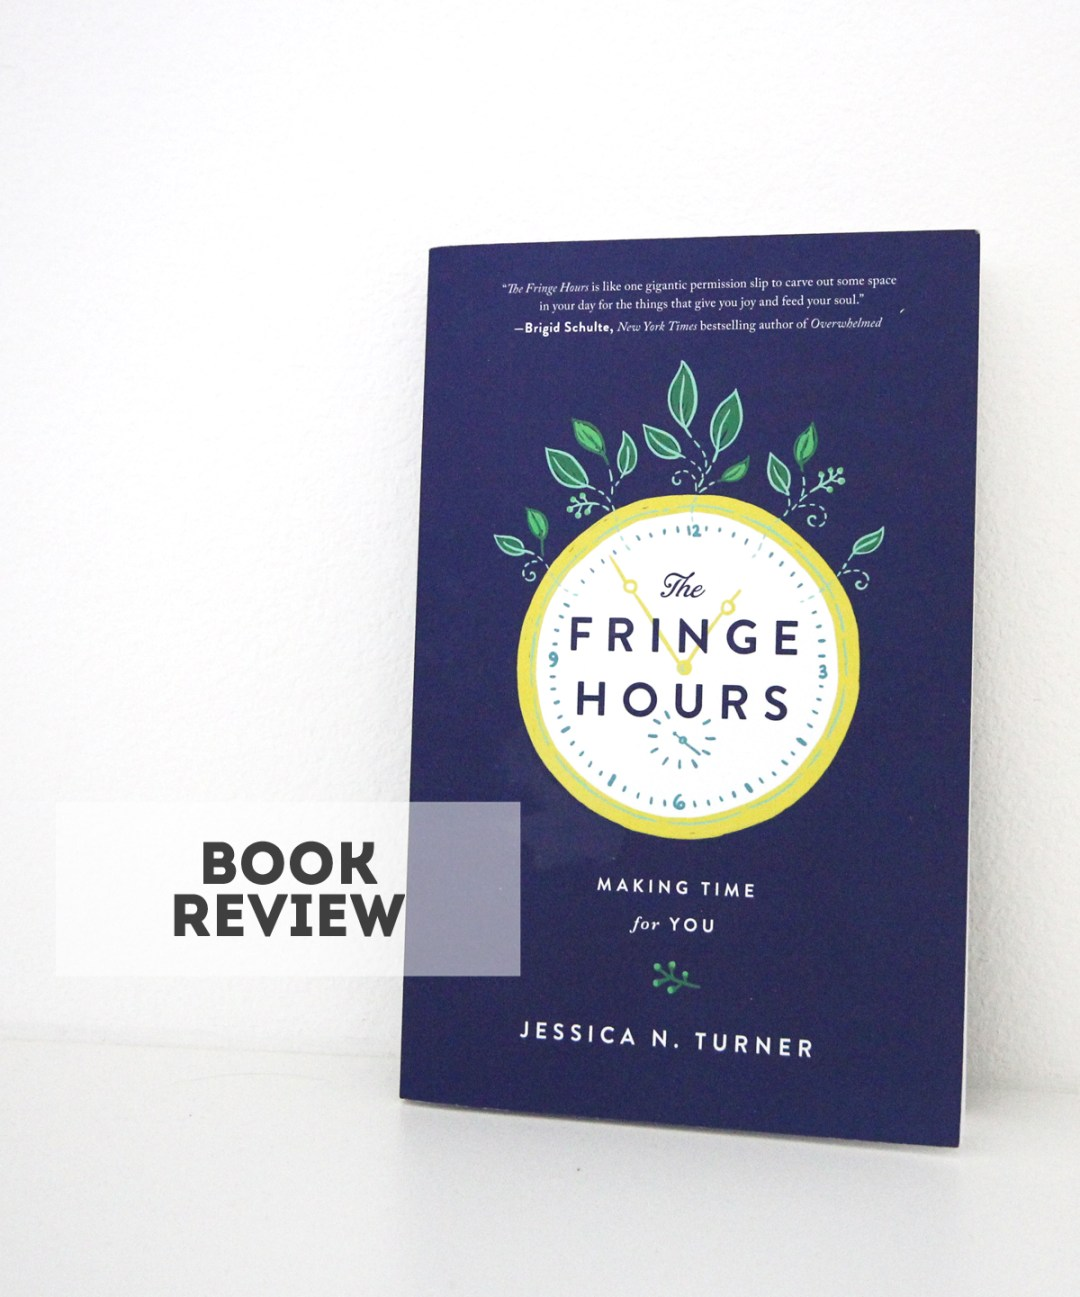 The Fringe Hours Book Review - www.randomolive.com